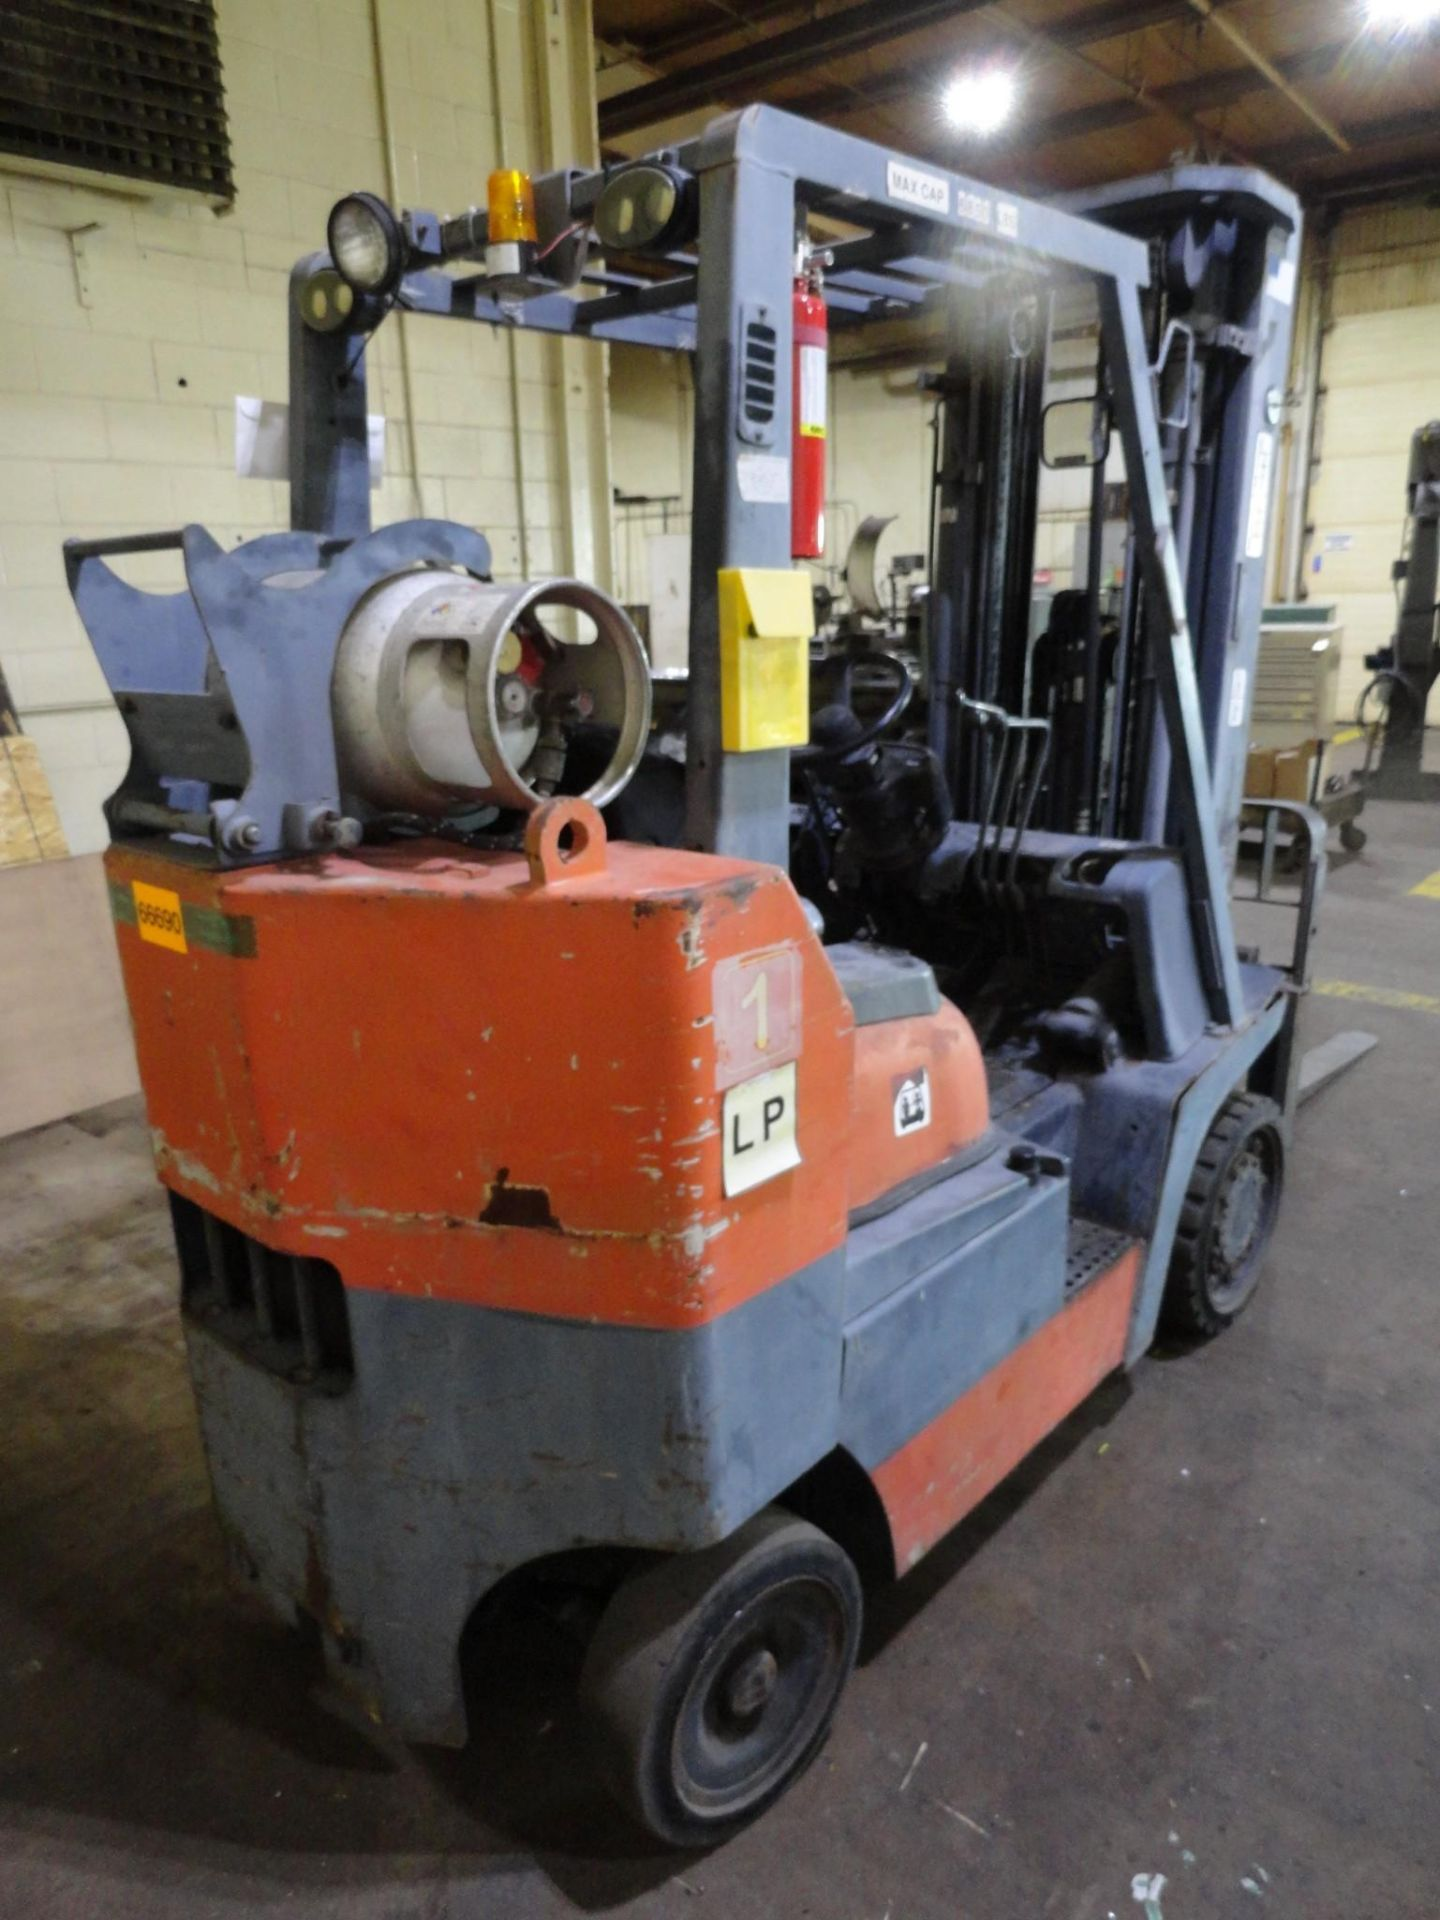 Toyota LP Forklift Truck Model 52-6FGCU35-BCS Serial 62181 6830 Lb Capacity 2-speed Forward and Reve - Image 4 of 18